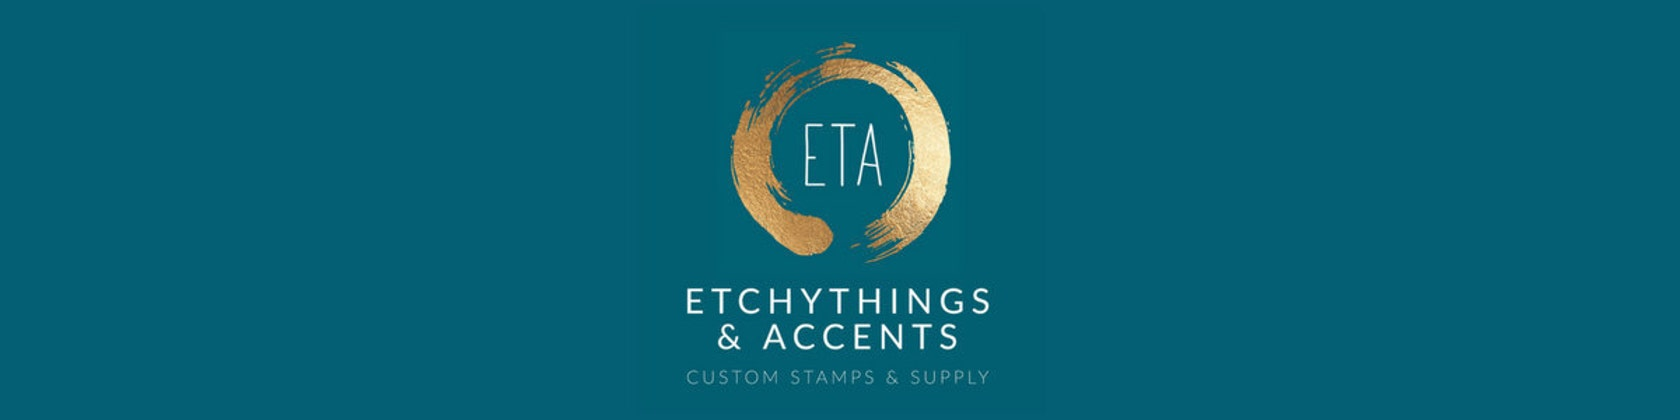 Making And Promoting Things That Grow Your Passion Di Etchythings